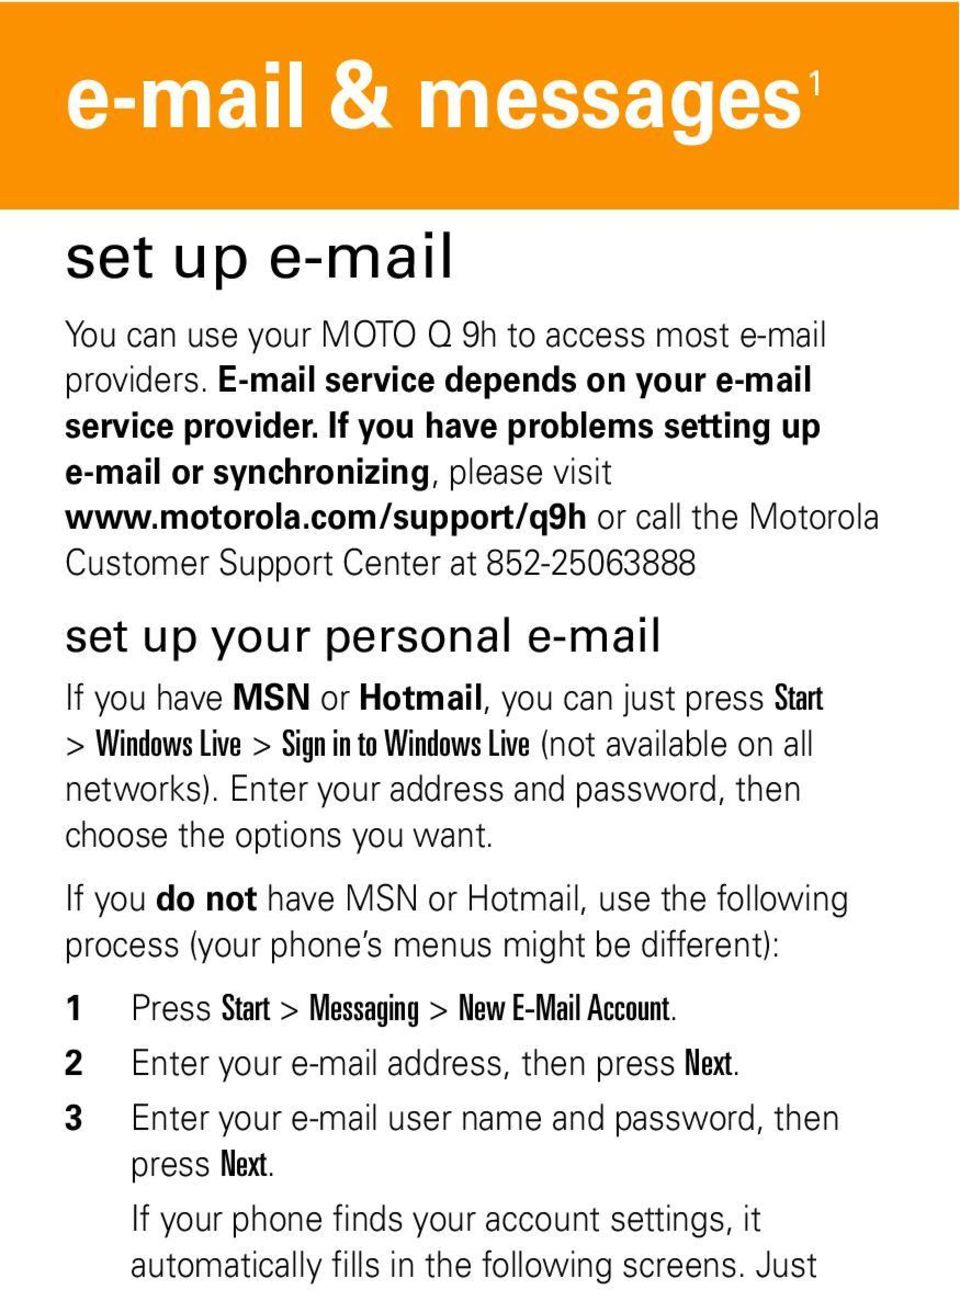 com/support/q9h or call the Motorola Customer Support Center at 852-25063888 set up your personal e-mail If you have MSN or Hotmail, you can just press Start > Windows Live > Sign in to Windows Live